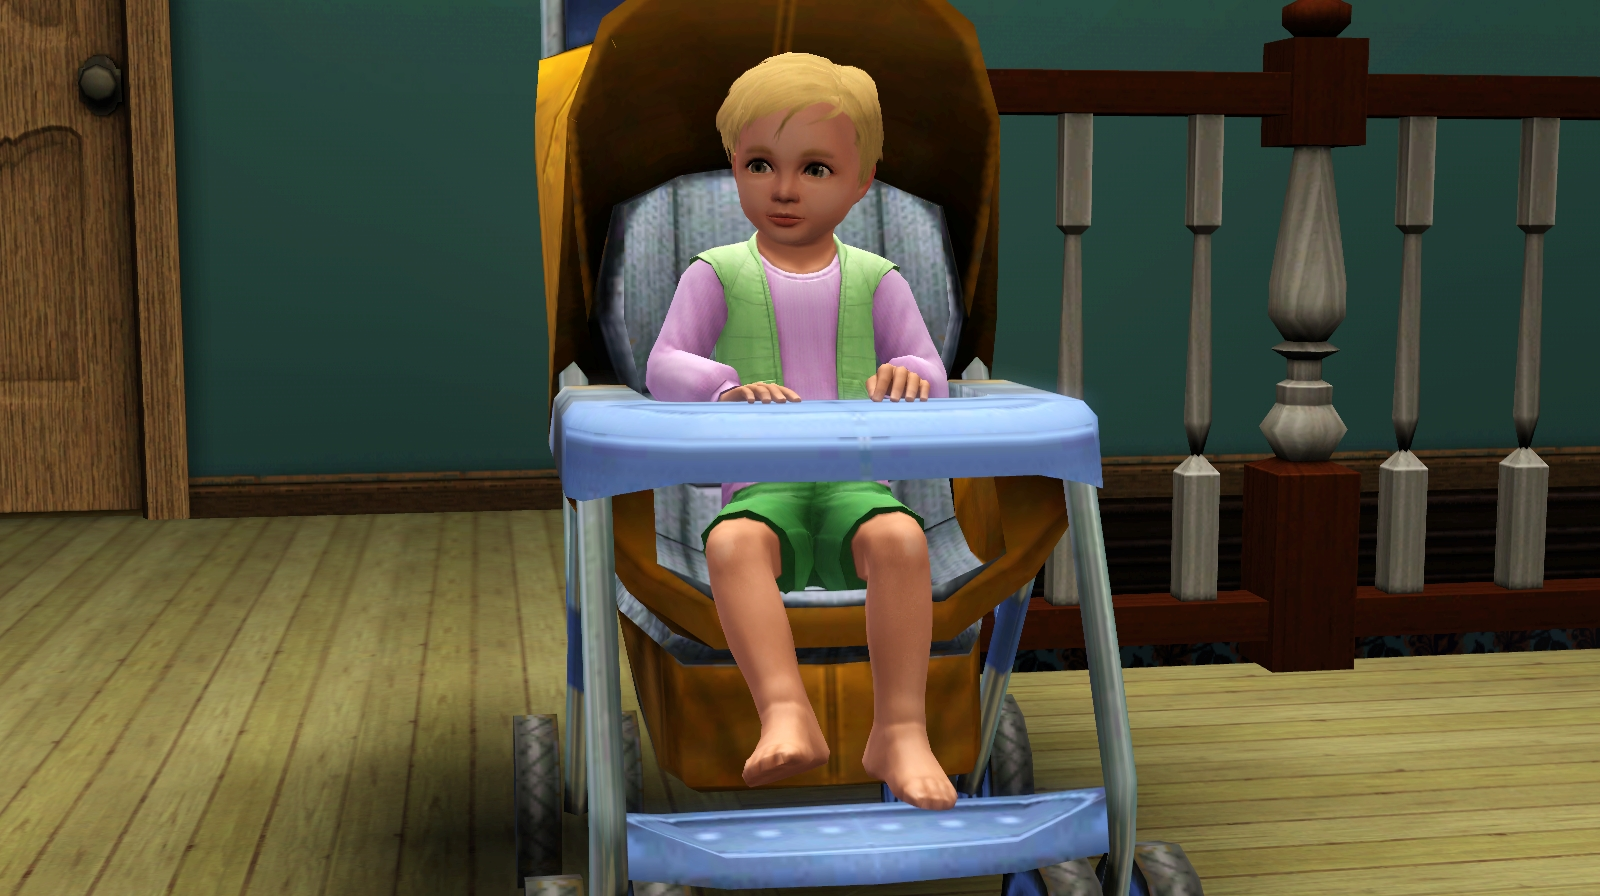 Sims 4 Toddler Stroller Mod Mod The Sims 5 New Toddler Animations For Stroller Crib